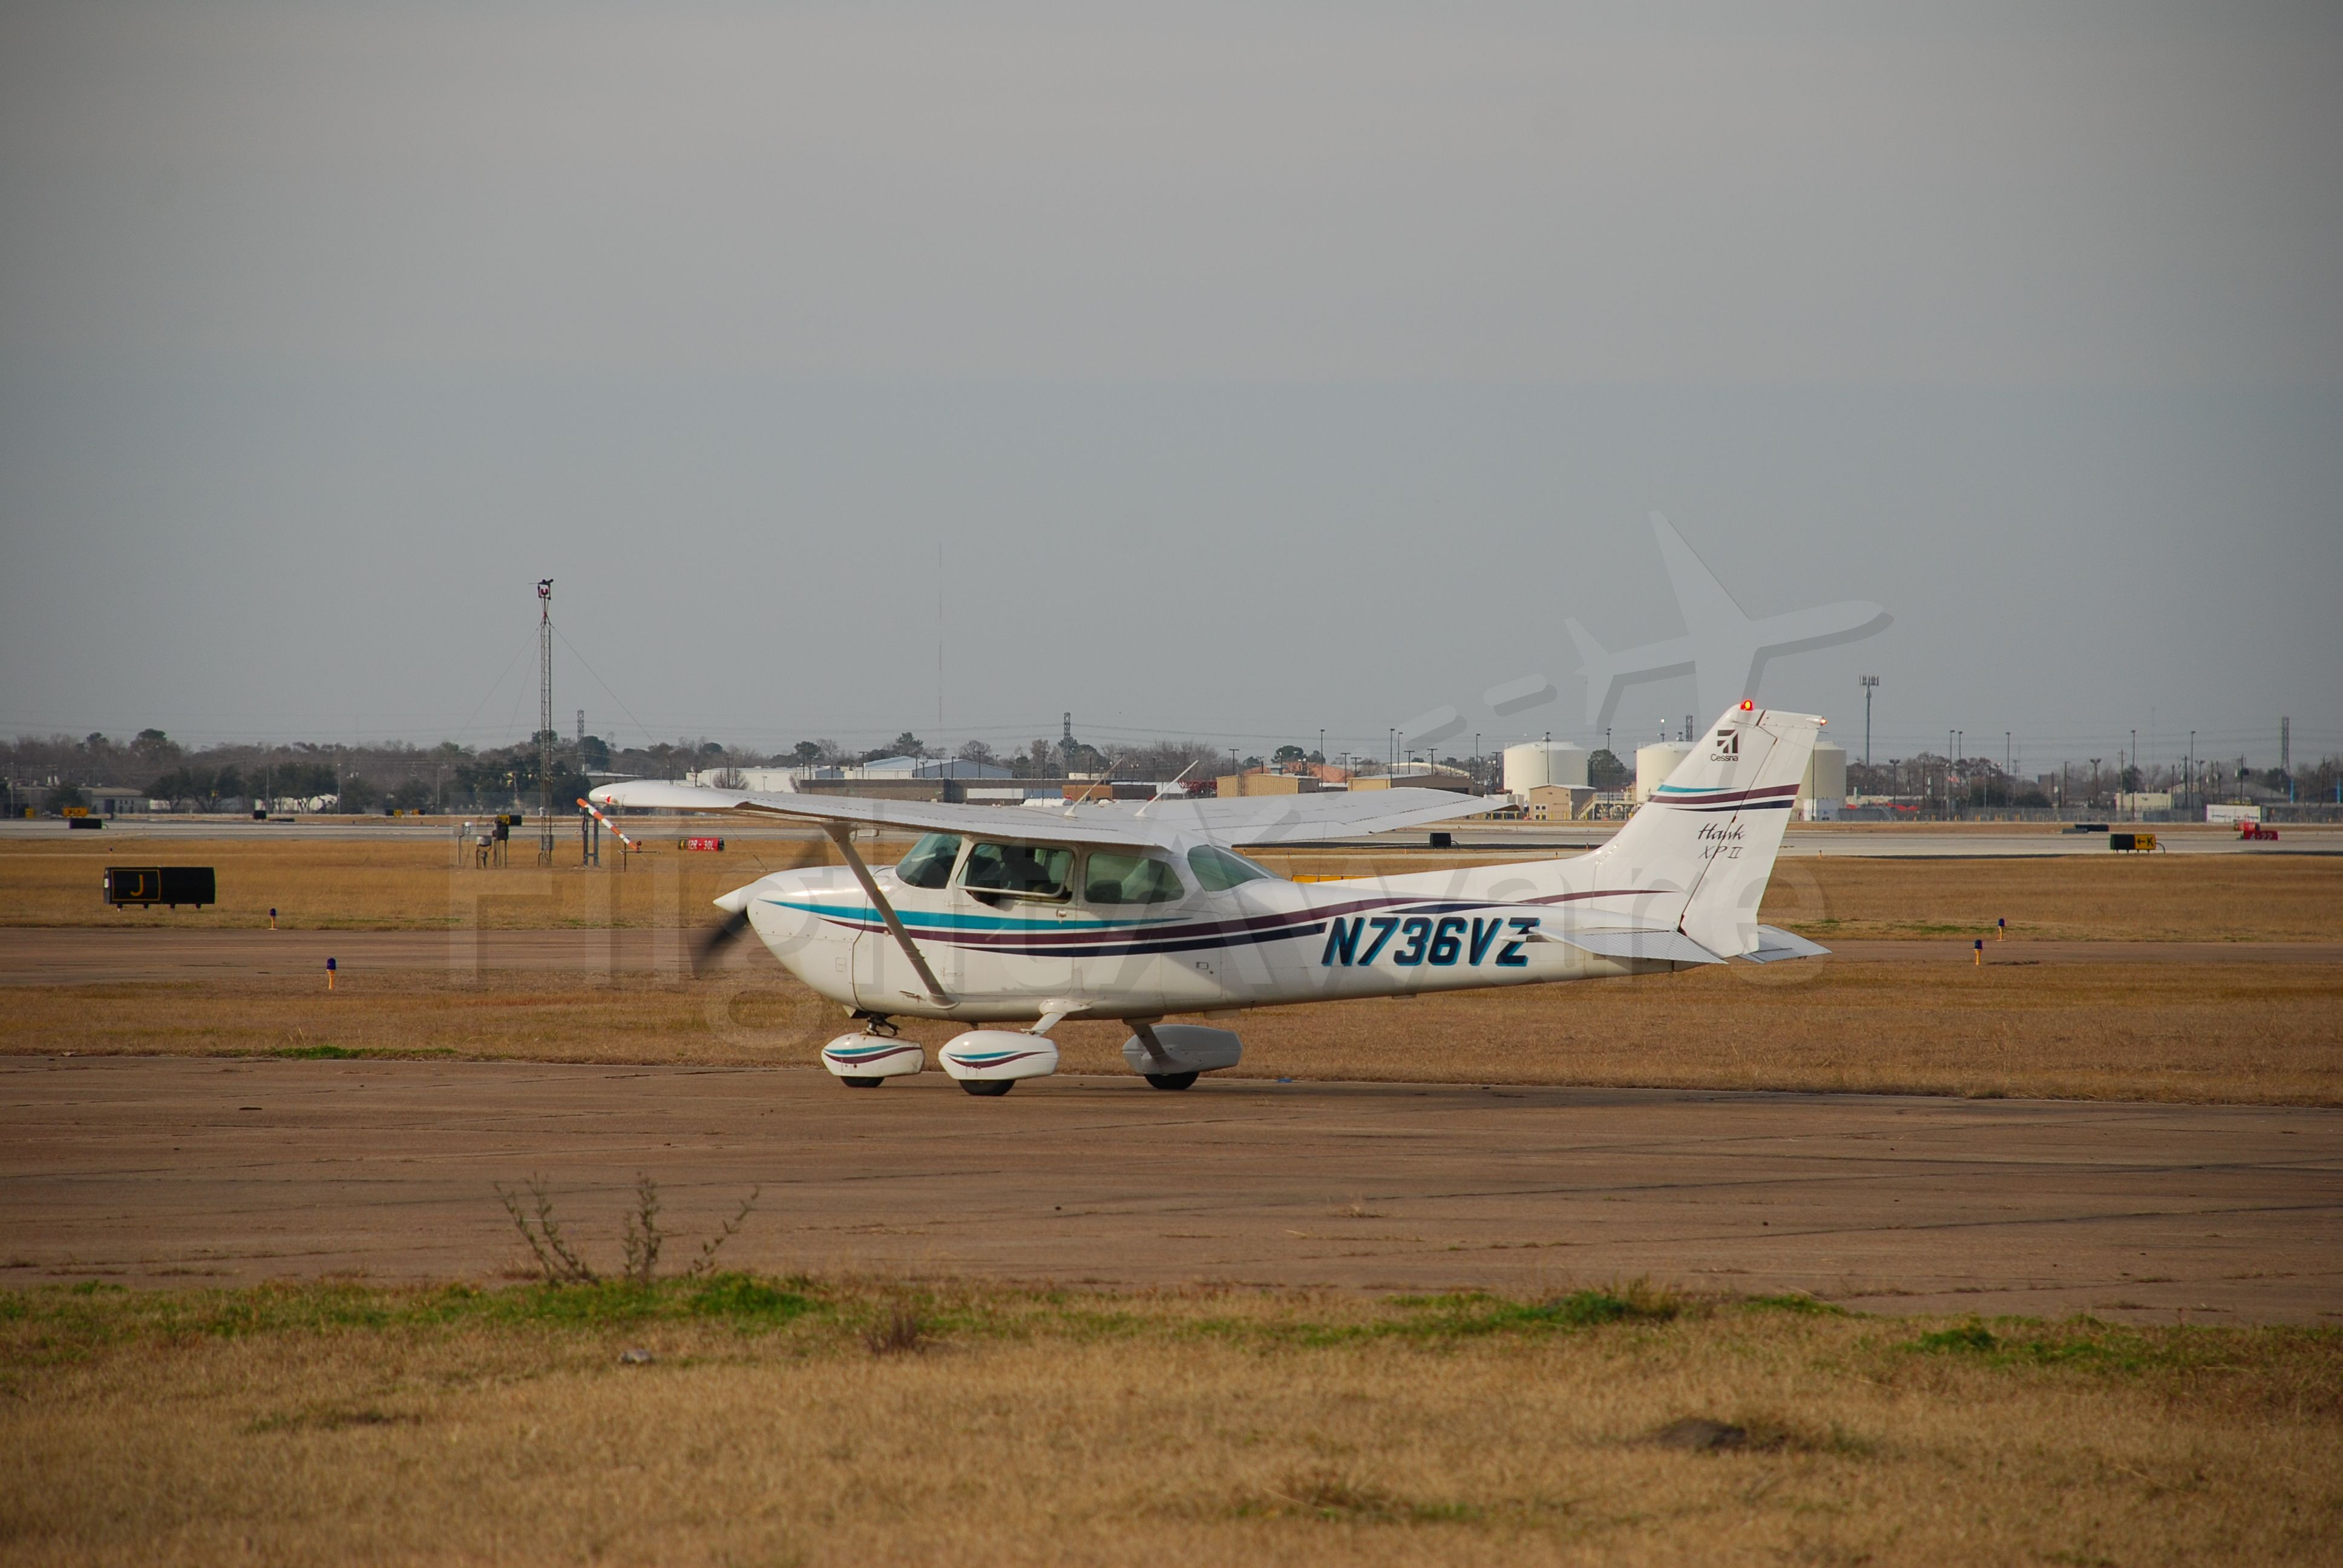 Cessna Skyhawk (N736VZ) - VZ doing run-up at KHOU ramp.